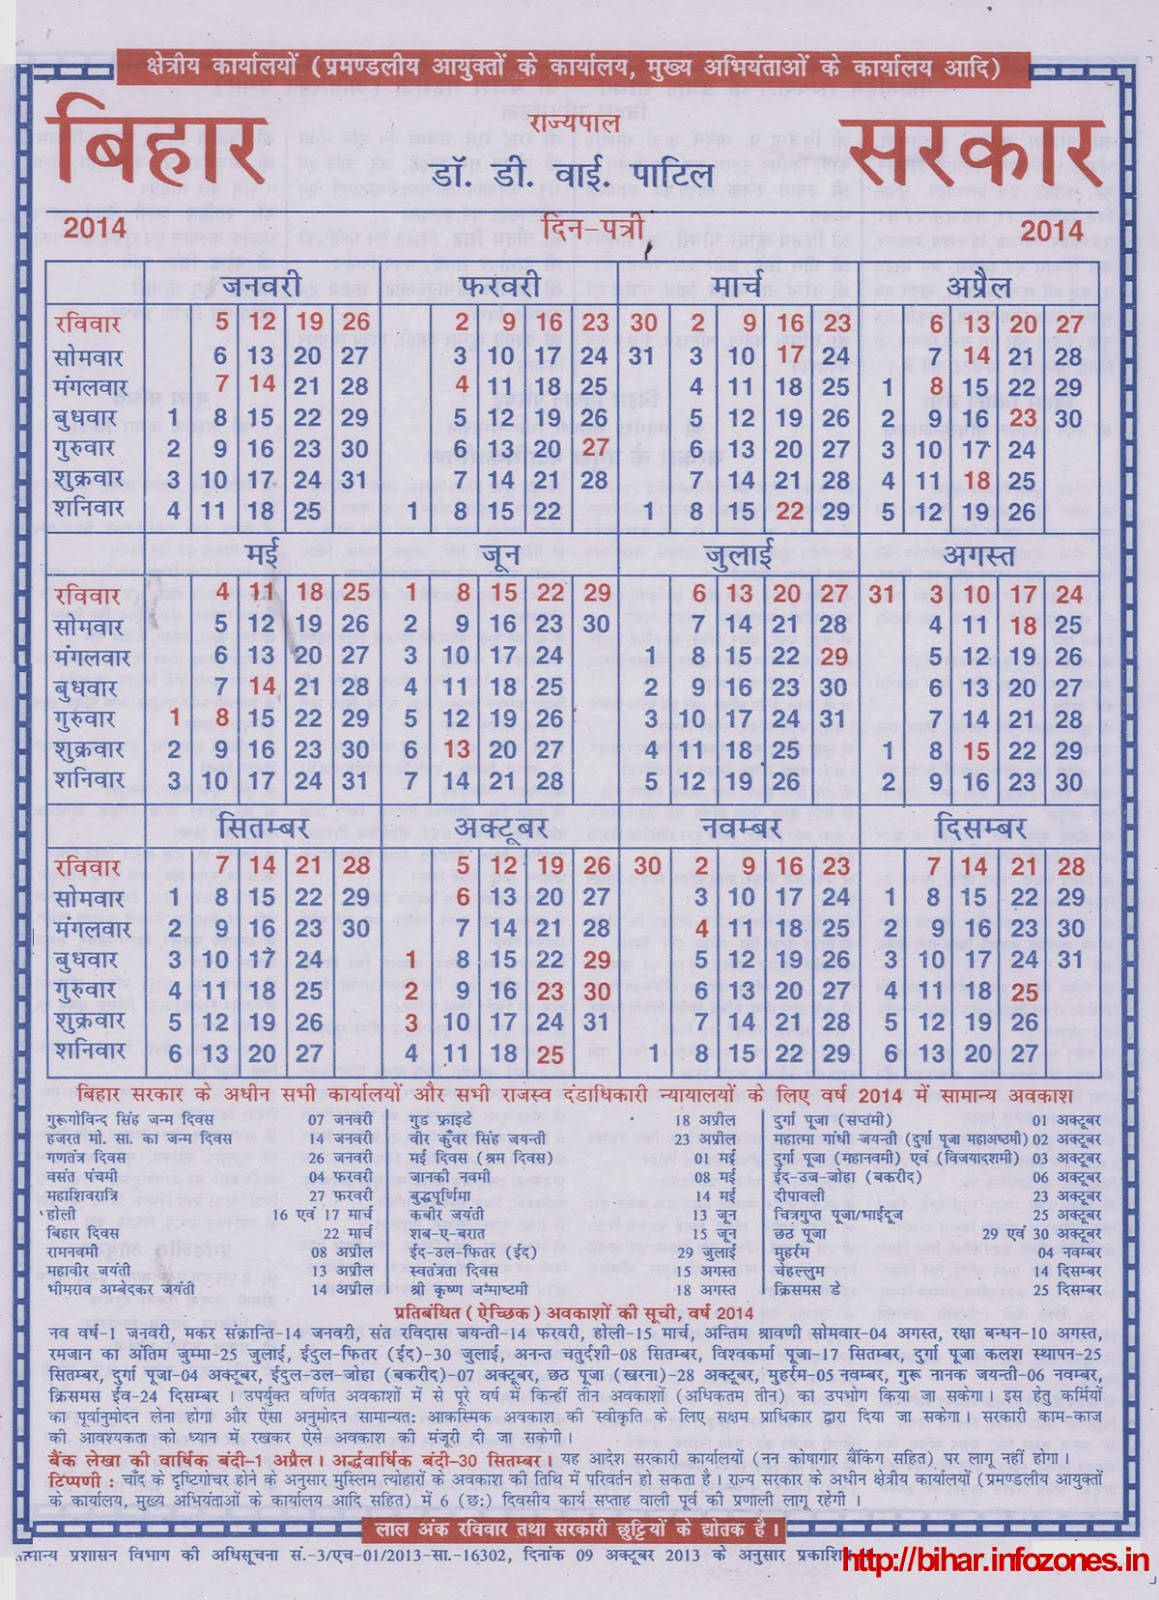 Bihar Government Calendar 2014 with regard to Bihar Govt Calendar